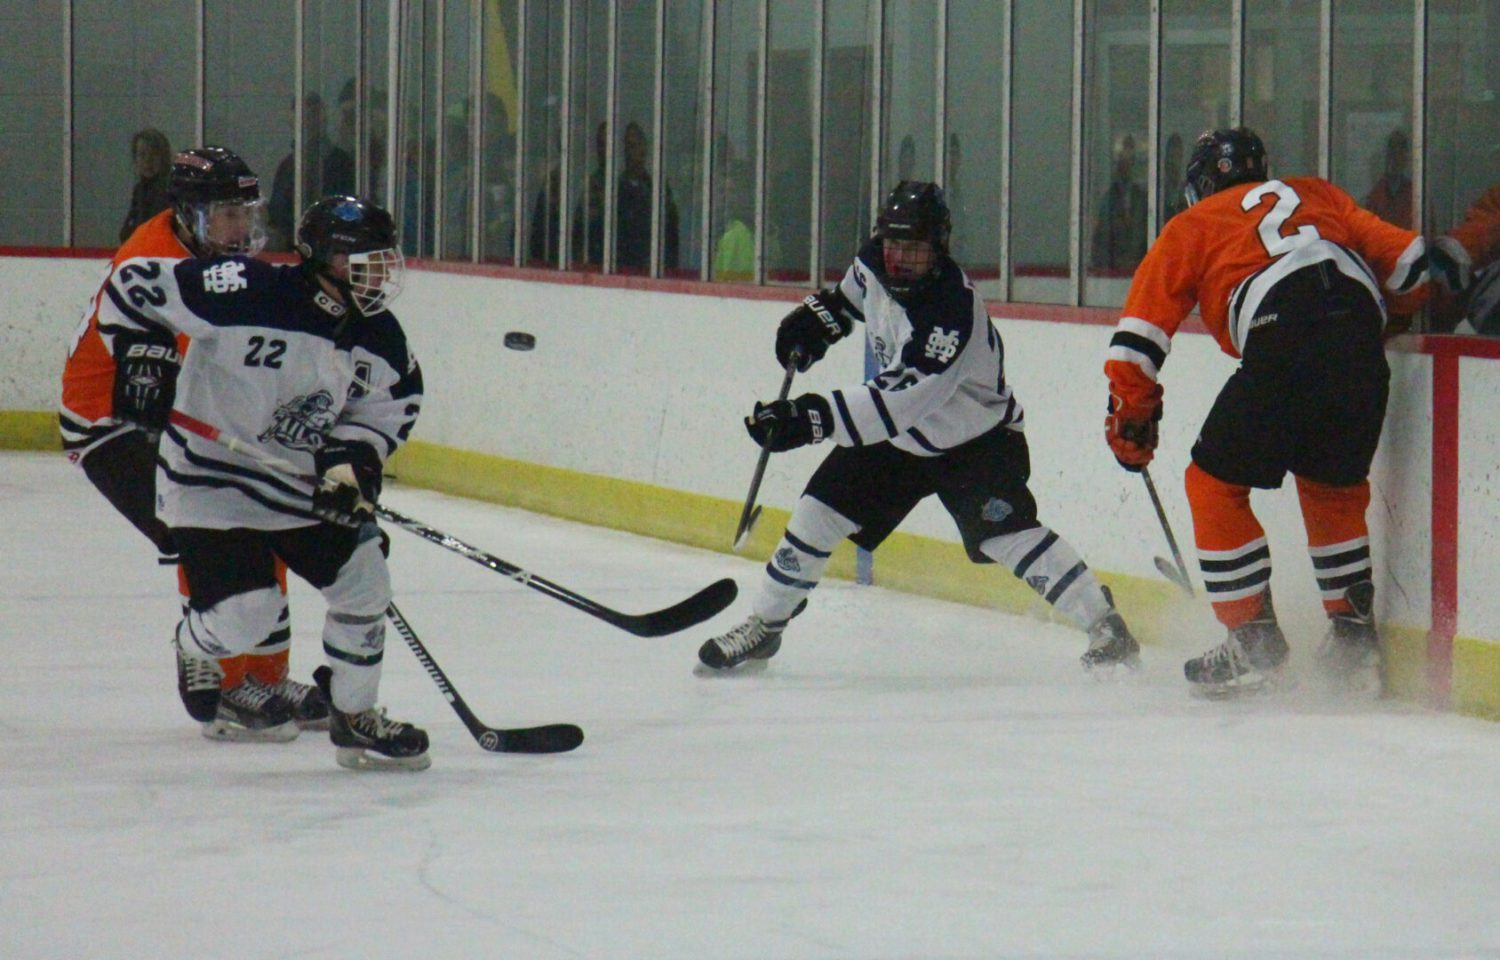 Northville High School hockey team completes a weekend sweep in Muskegon with a 5-3 win over Mona Shores